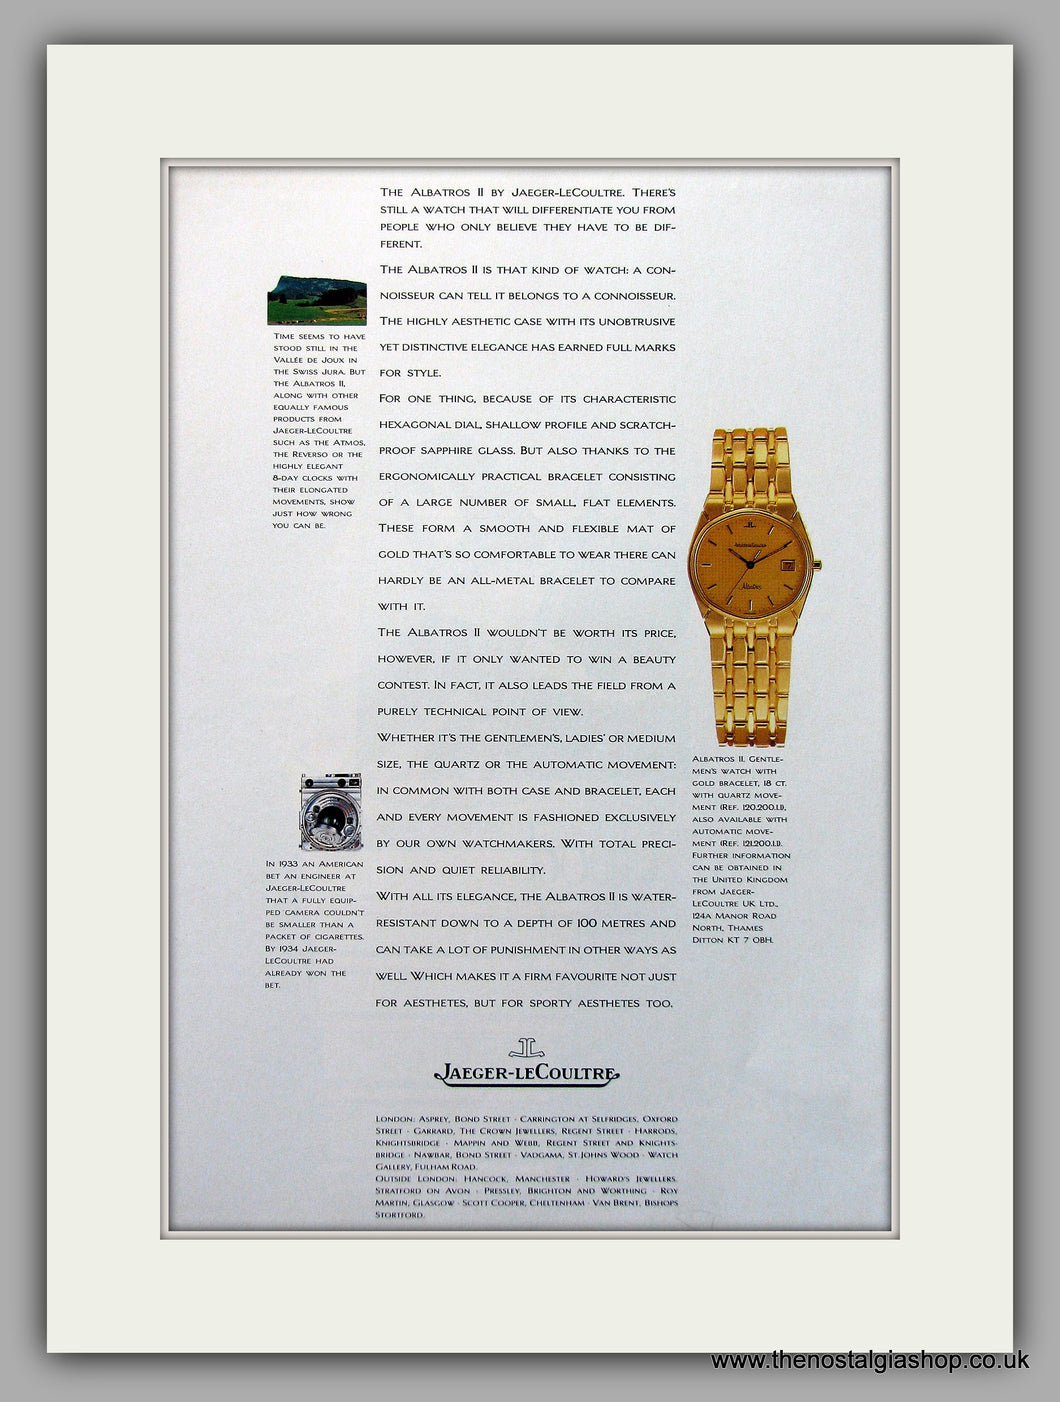 Jaeger-LeCoultre Albatros II Watch Original Advert 1986 (ref AD6920)